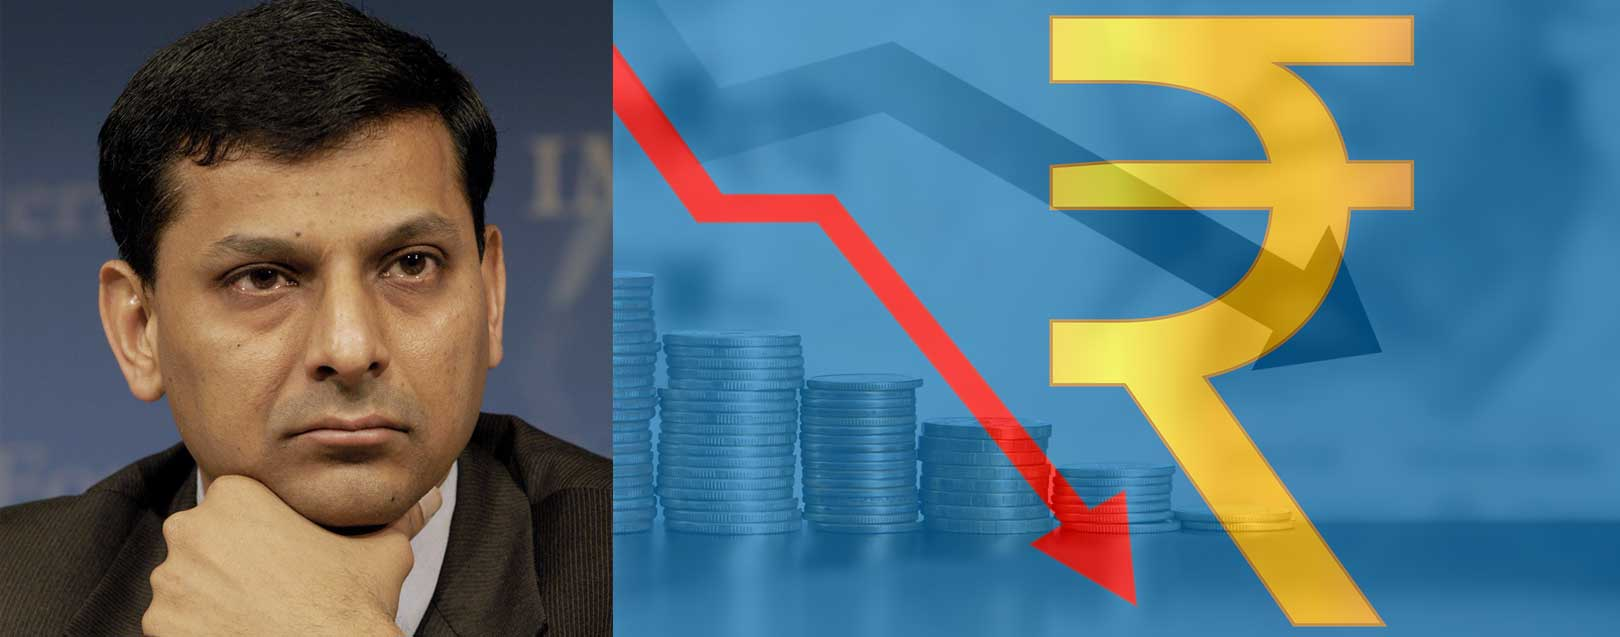 Hope India will continue to prioritise low inflation: Rajan